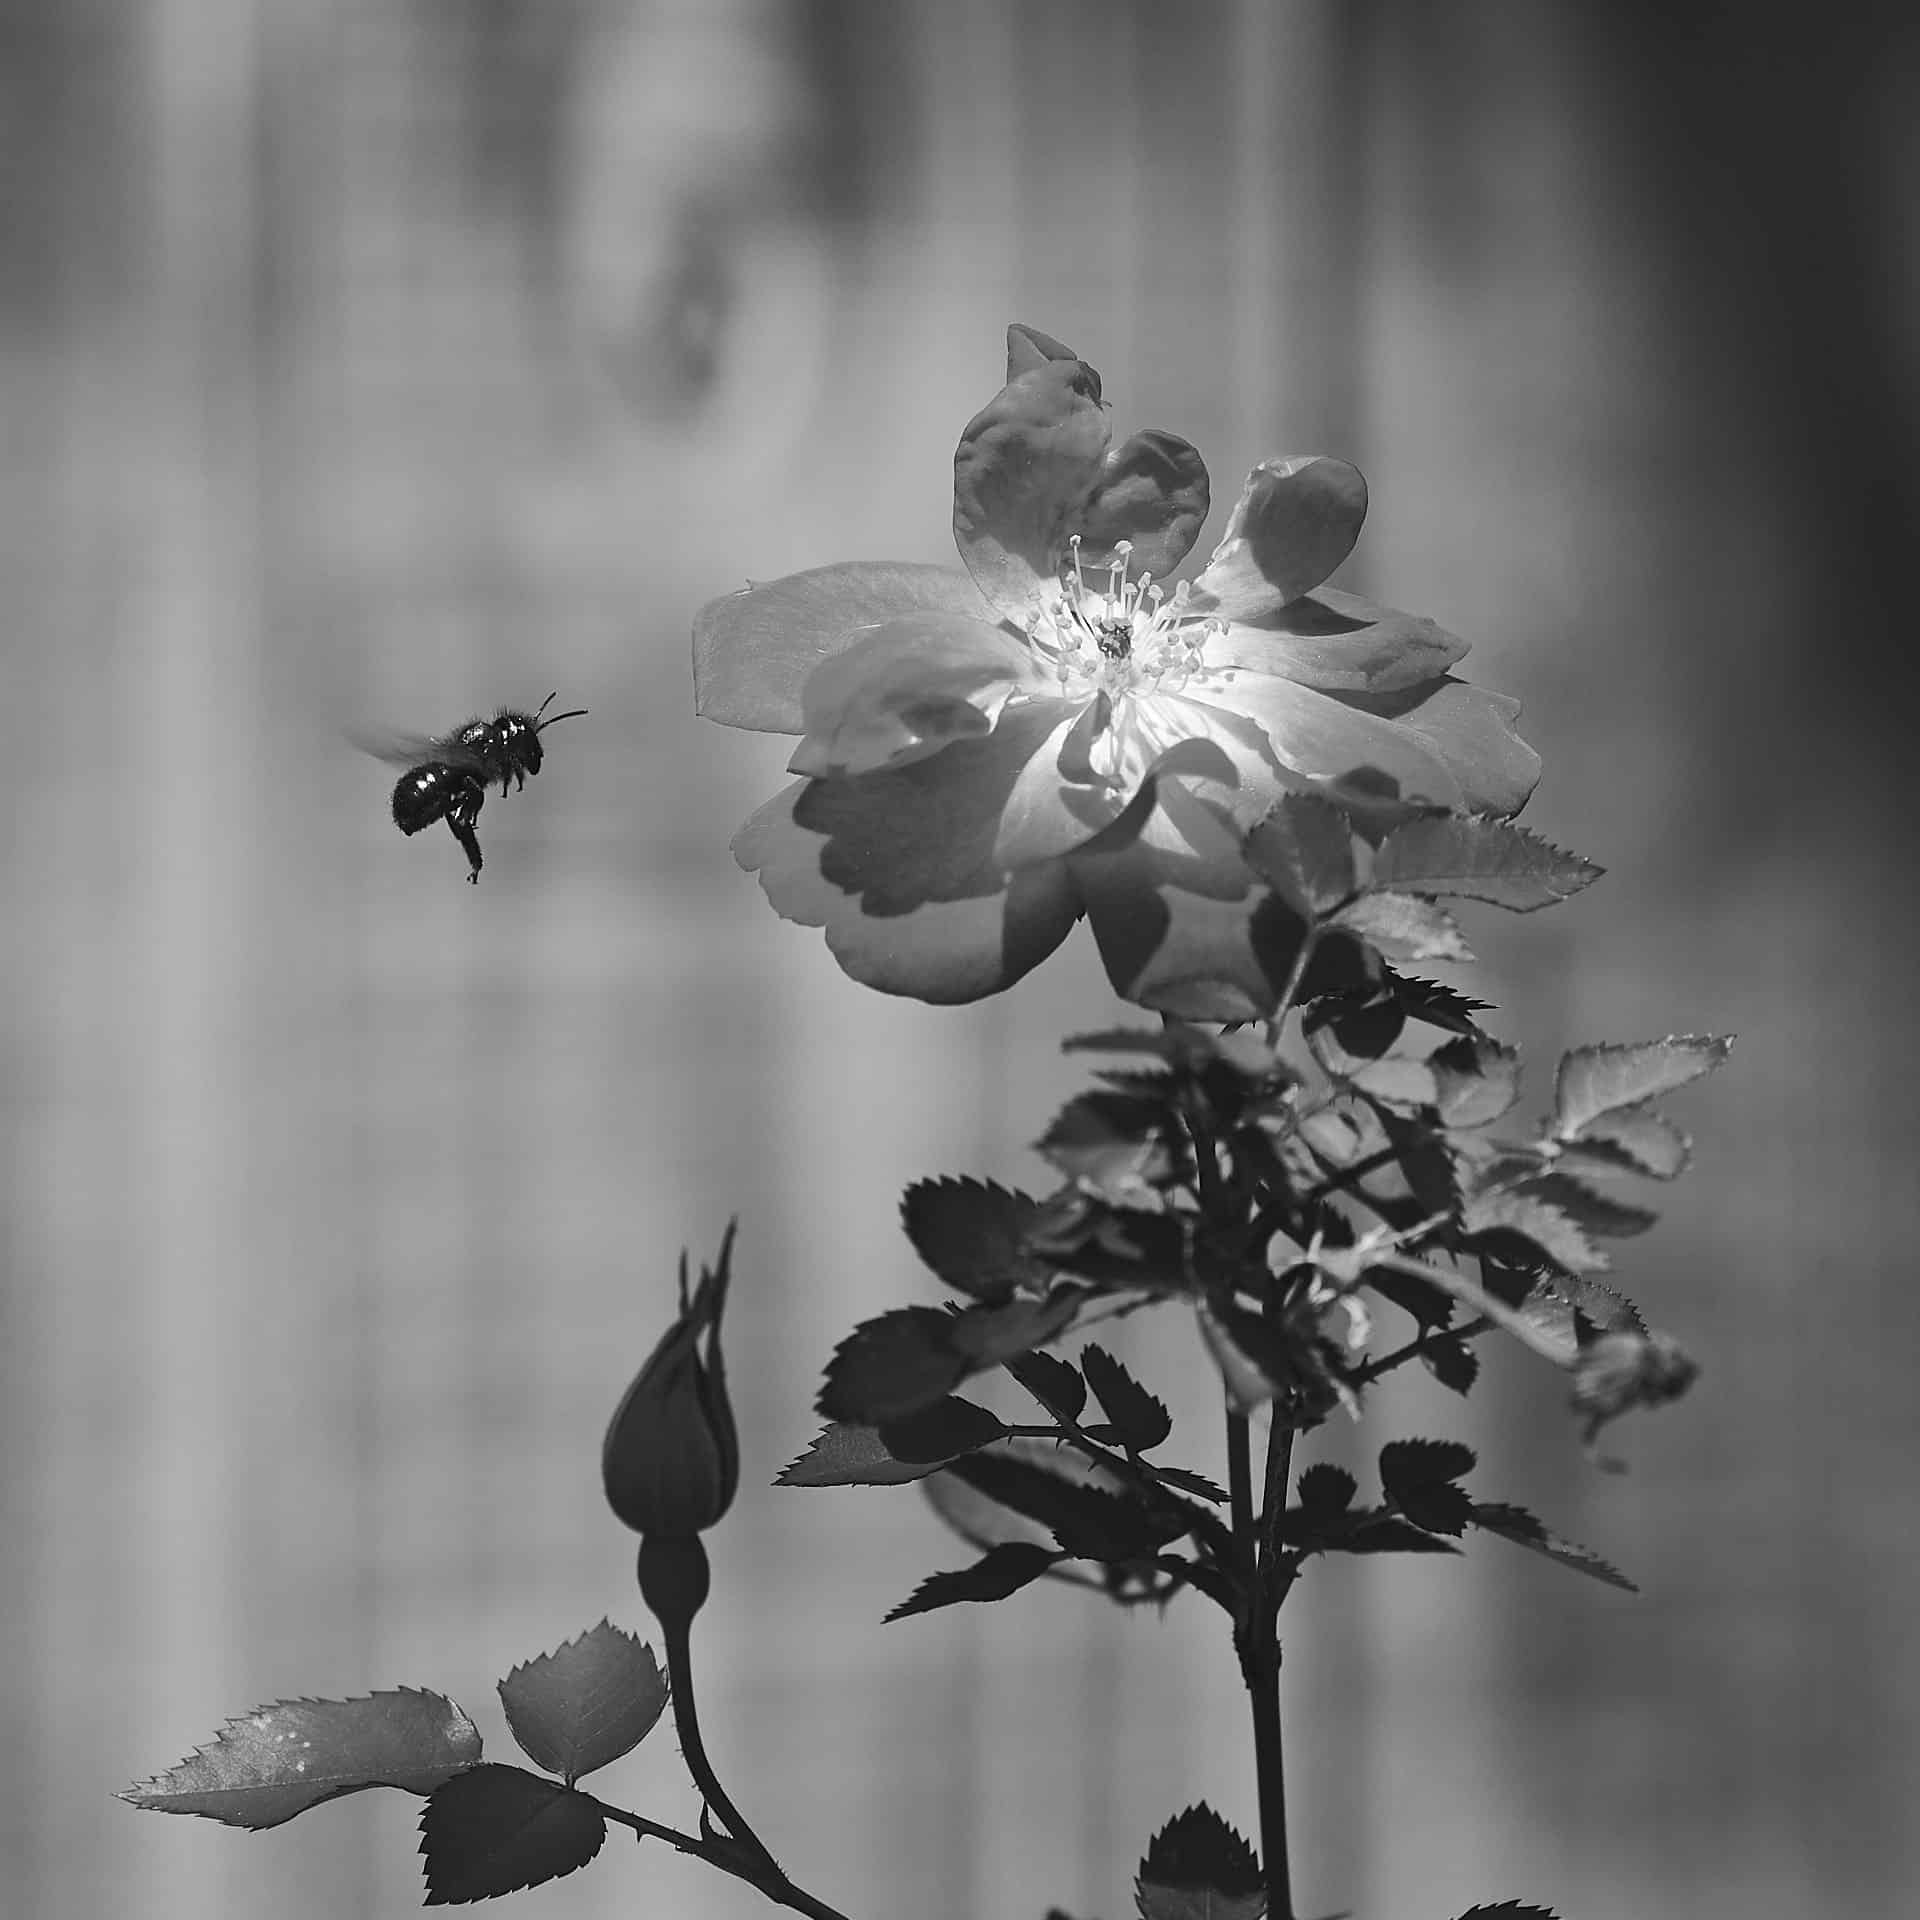 a bee buzzing around an open rose bloom